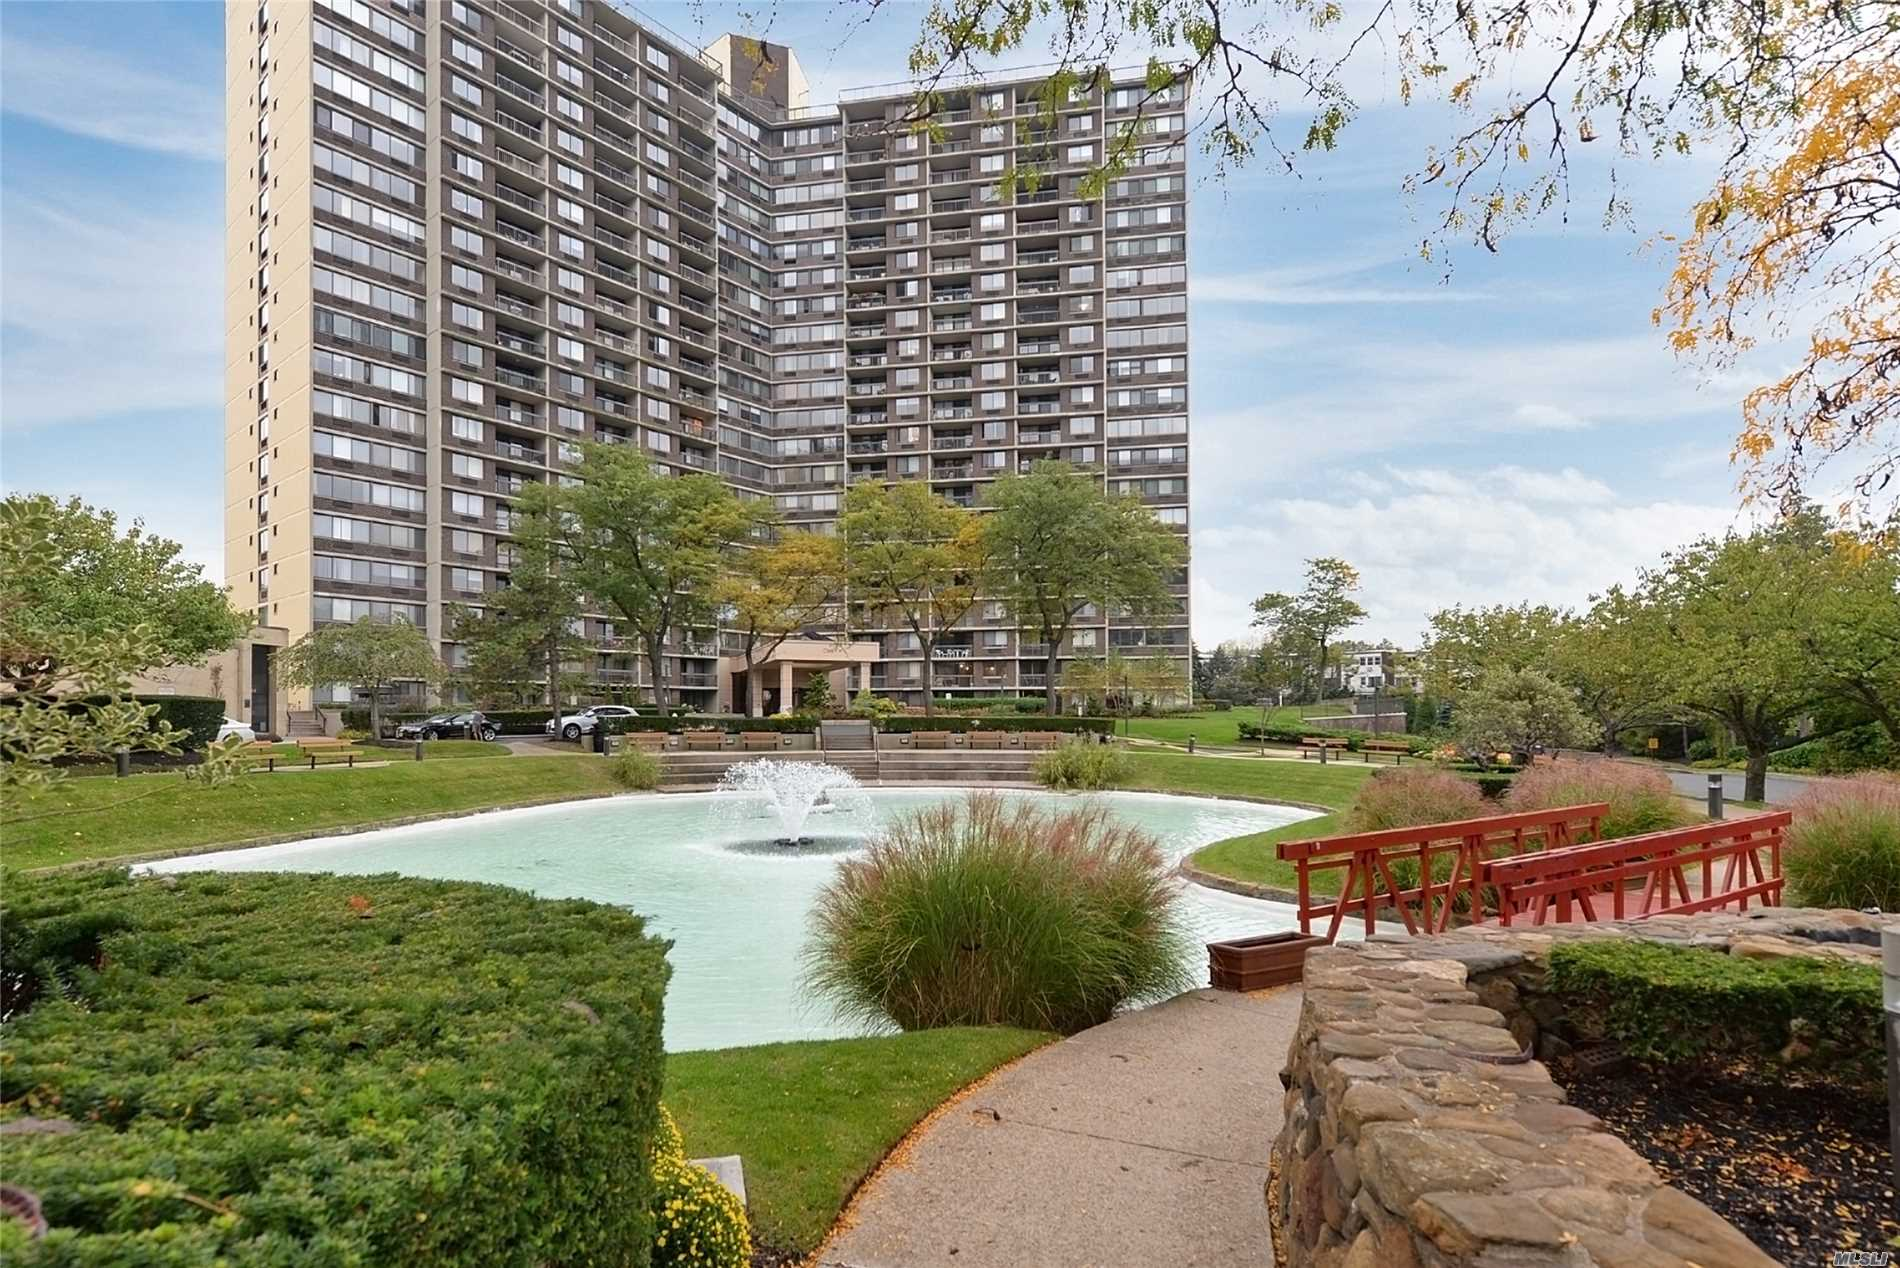 Fabulous Bay Club Gated Community. Security. 24 Hr. Doorman / Concierge. Beautiful Renovated **Amazing Deal** Large Fully Renovated 1 Bedroom Unit.***Brand New Wood Floors** Year Round Swim & Fitness Center, Indoor Parking (Extra Fees). Free Tennis Club. New Children's Playground. New On Premises Restaurant. Underground Stores.Best Location. Near Everything.